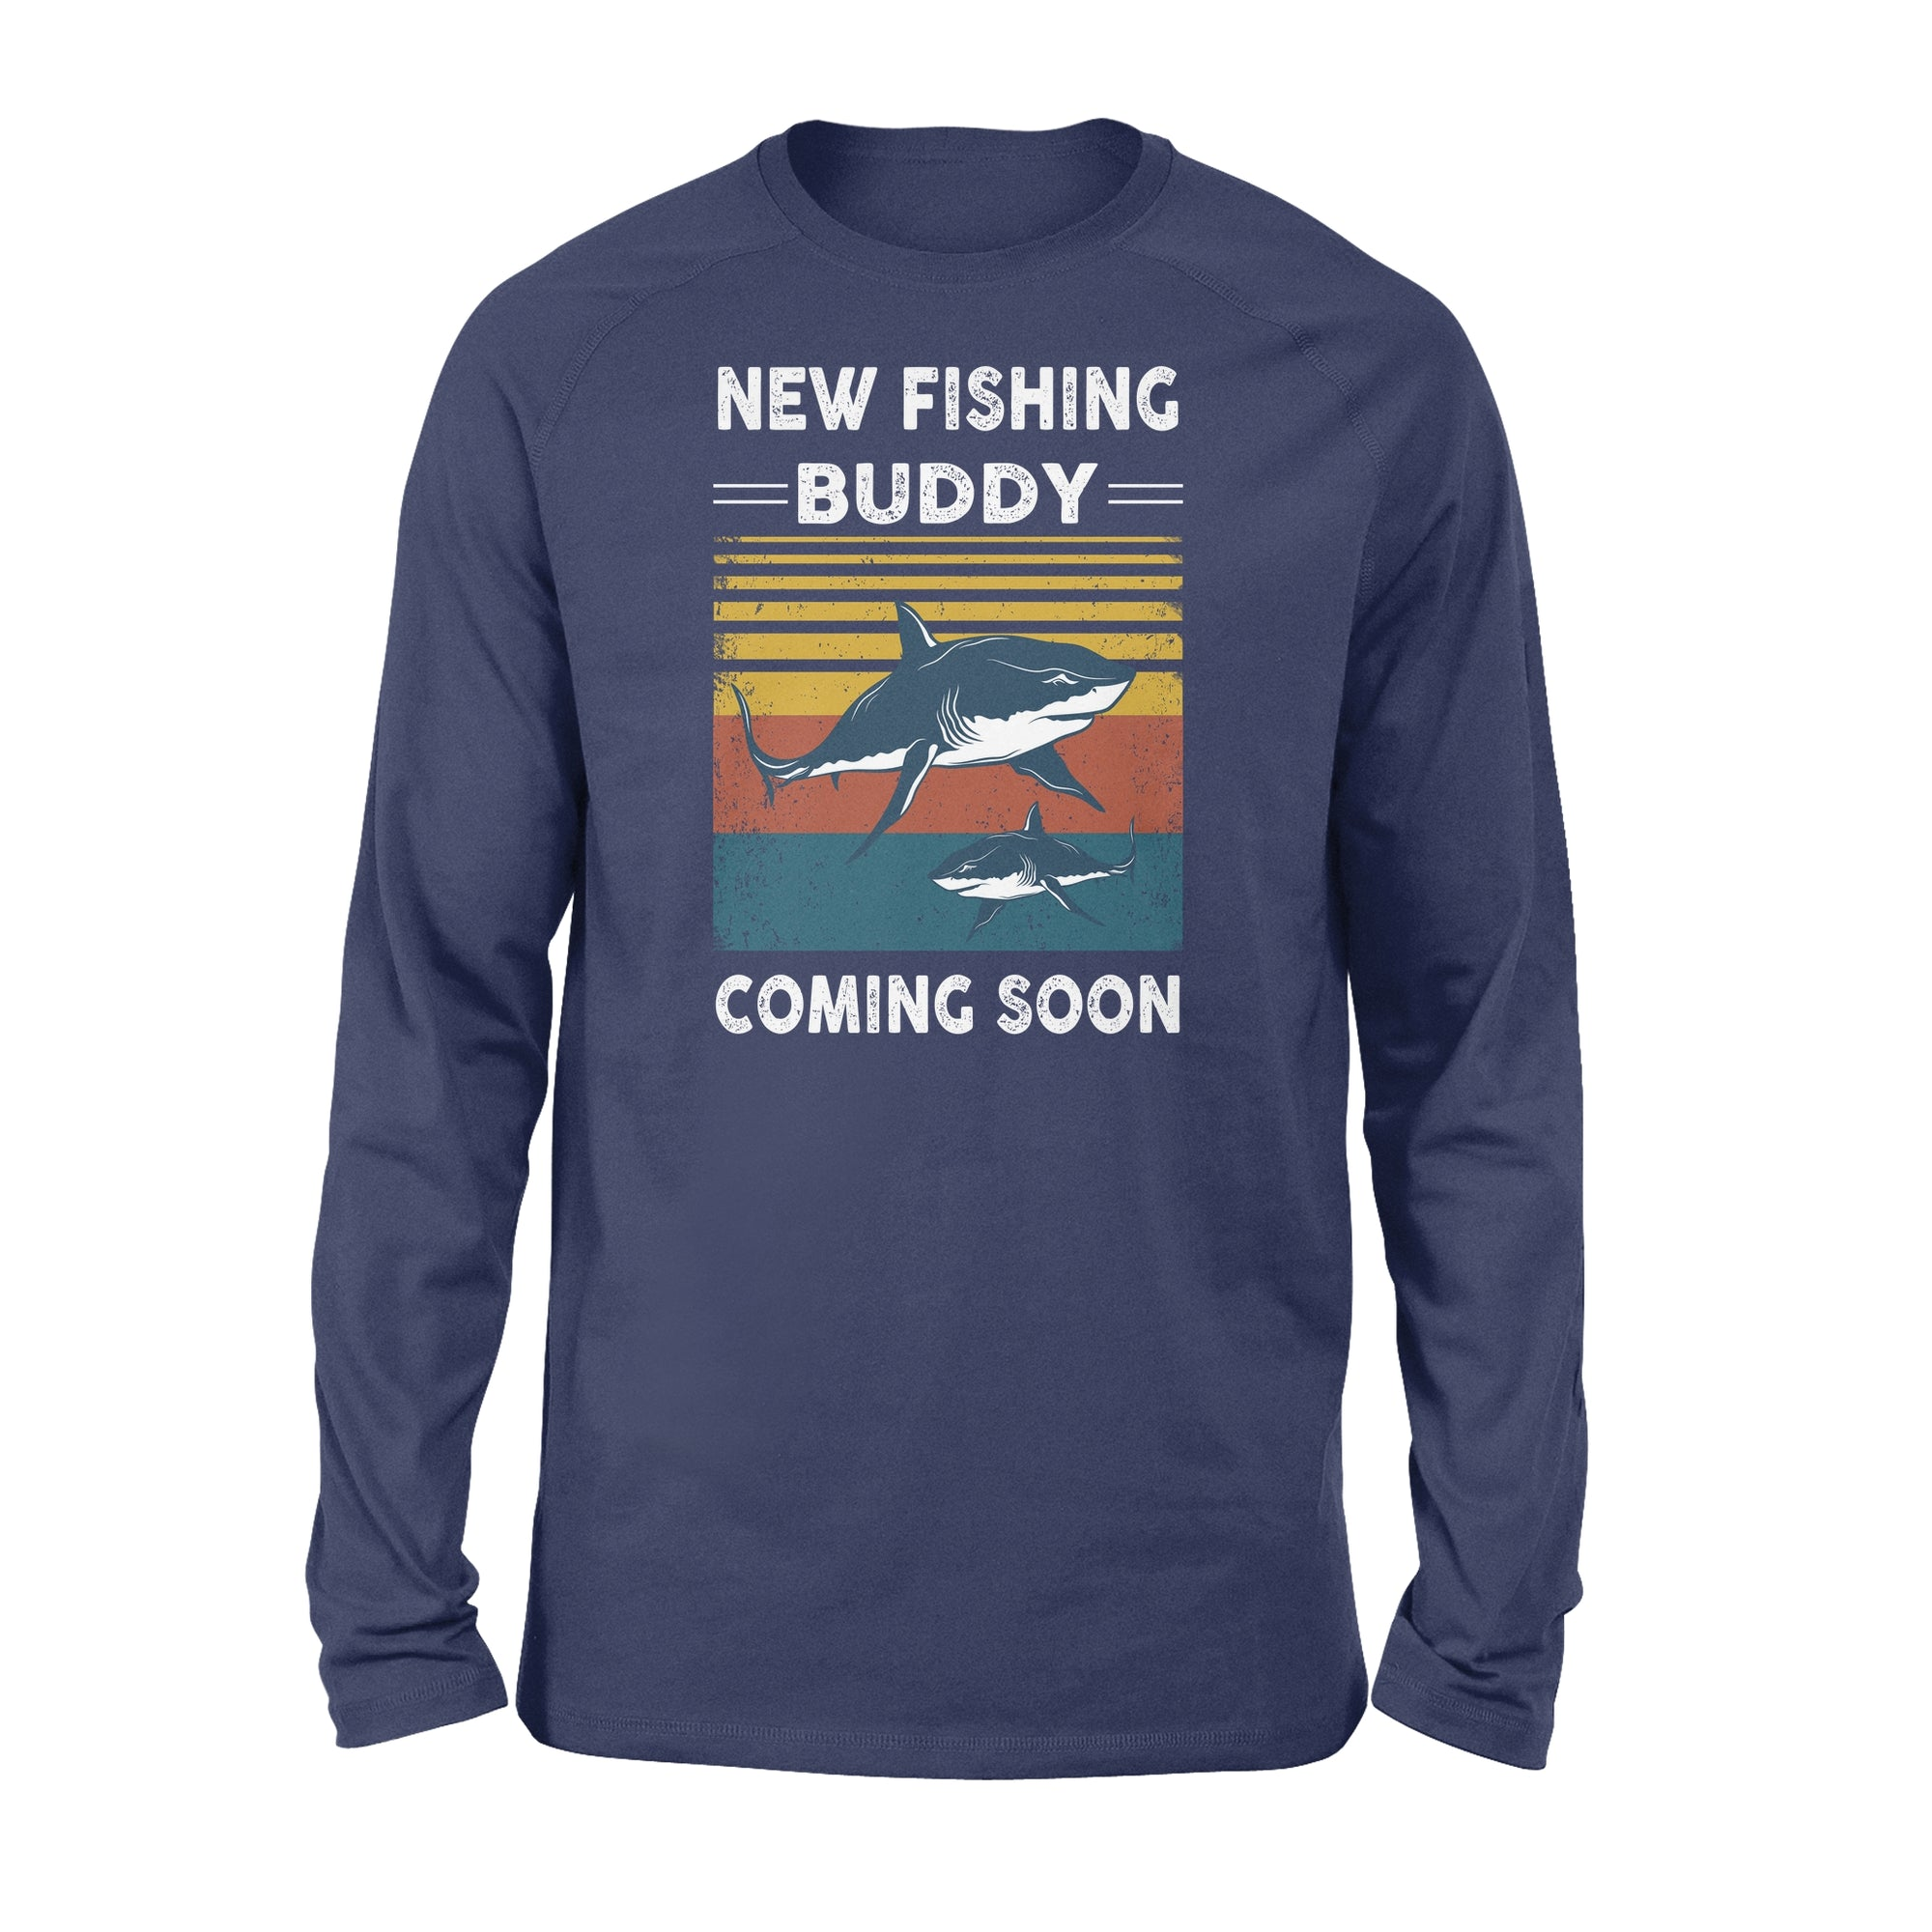 Classic Long Sleeve - New fishing buddy coming soon - Gifts for Dad to be - 1319